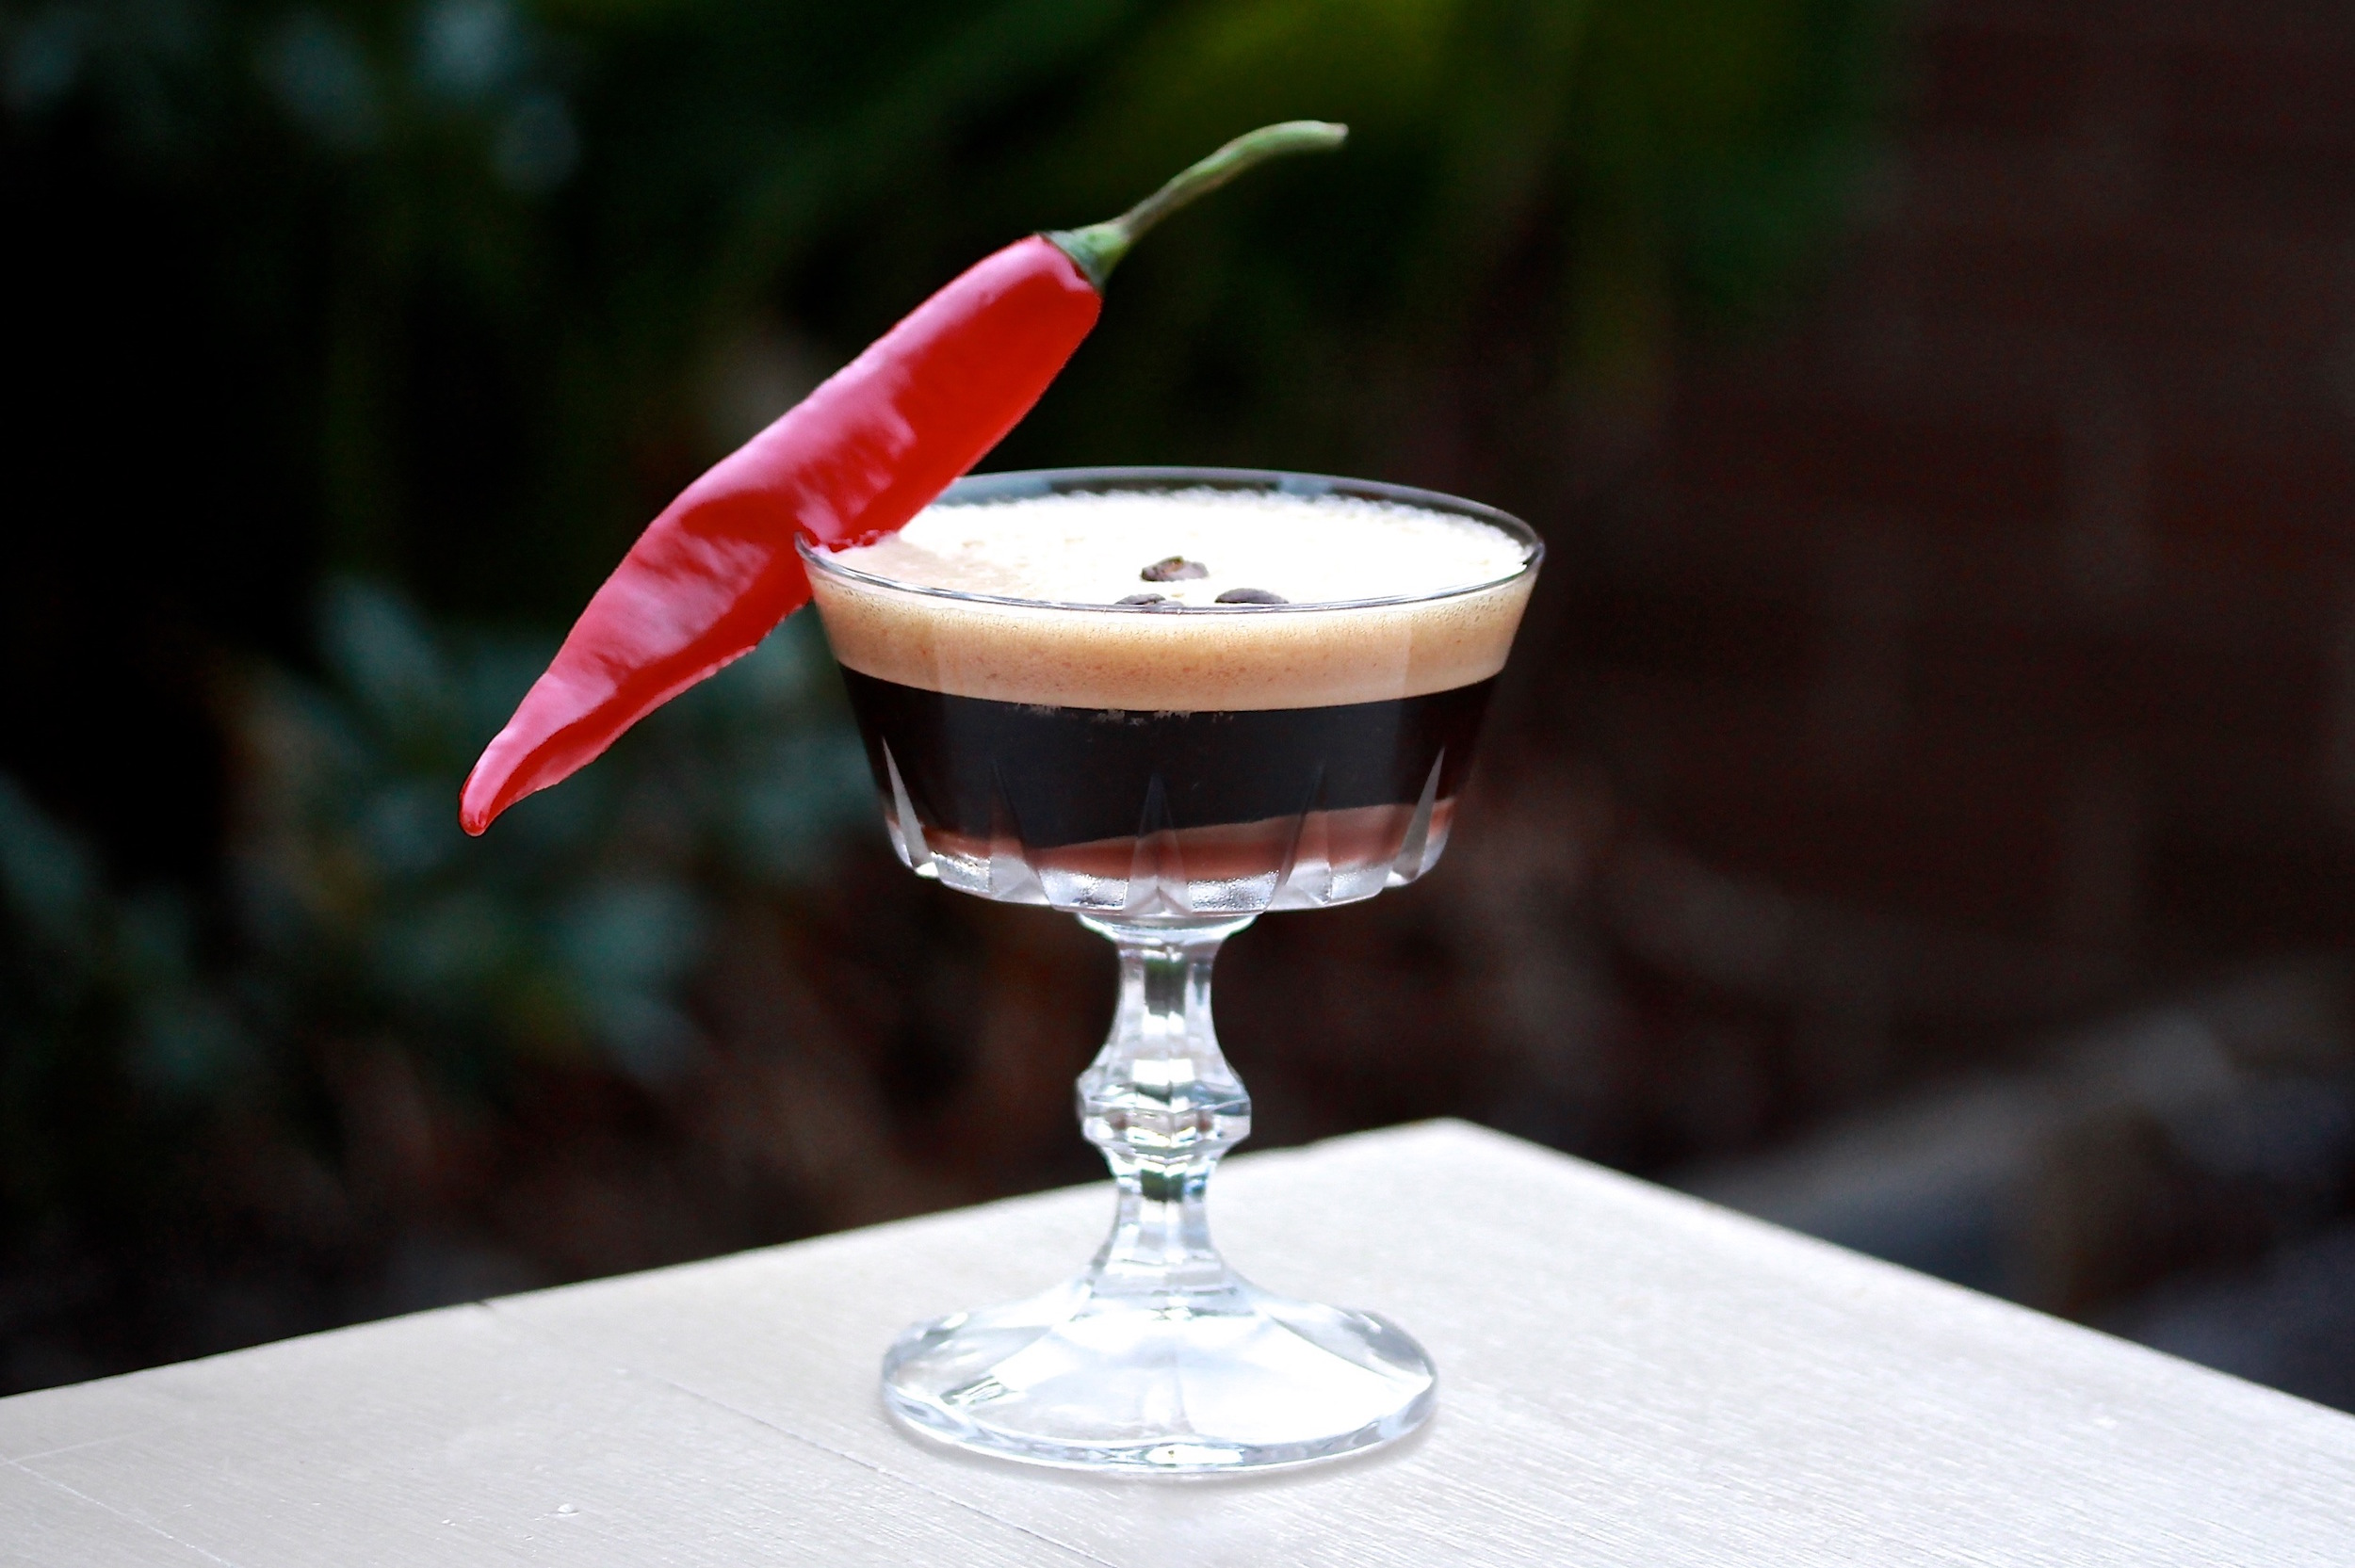 Photo credit: https://www.fourlinesupply.com/coffee-cocktails